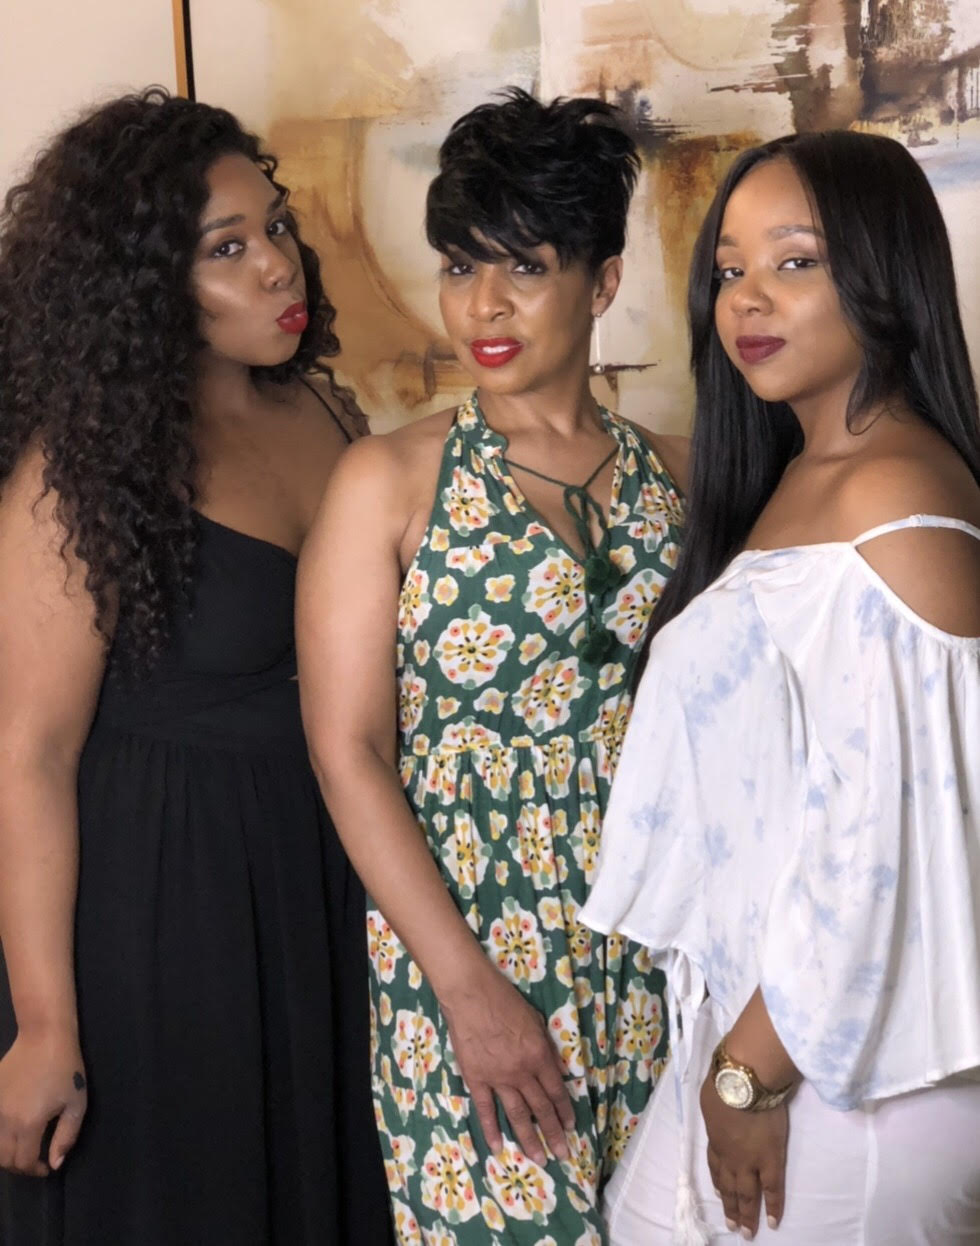 (right to left) Breanna, Her mother (Glenda Curtis), and Sister (Sonya) plan to open a hair salon offering the Total Beauty experience in the near future.